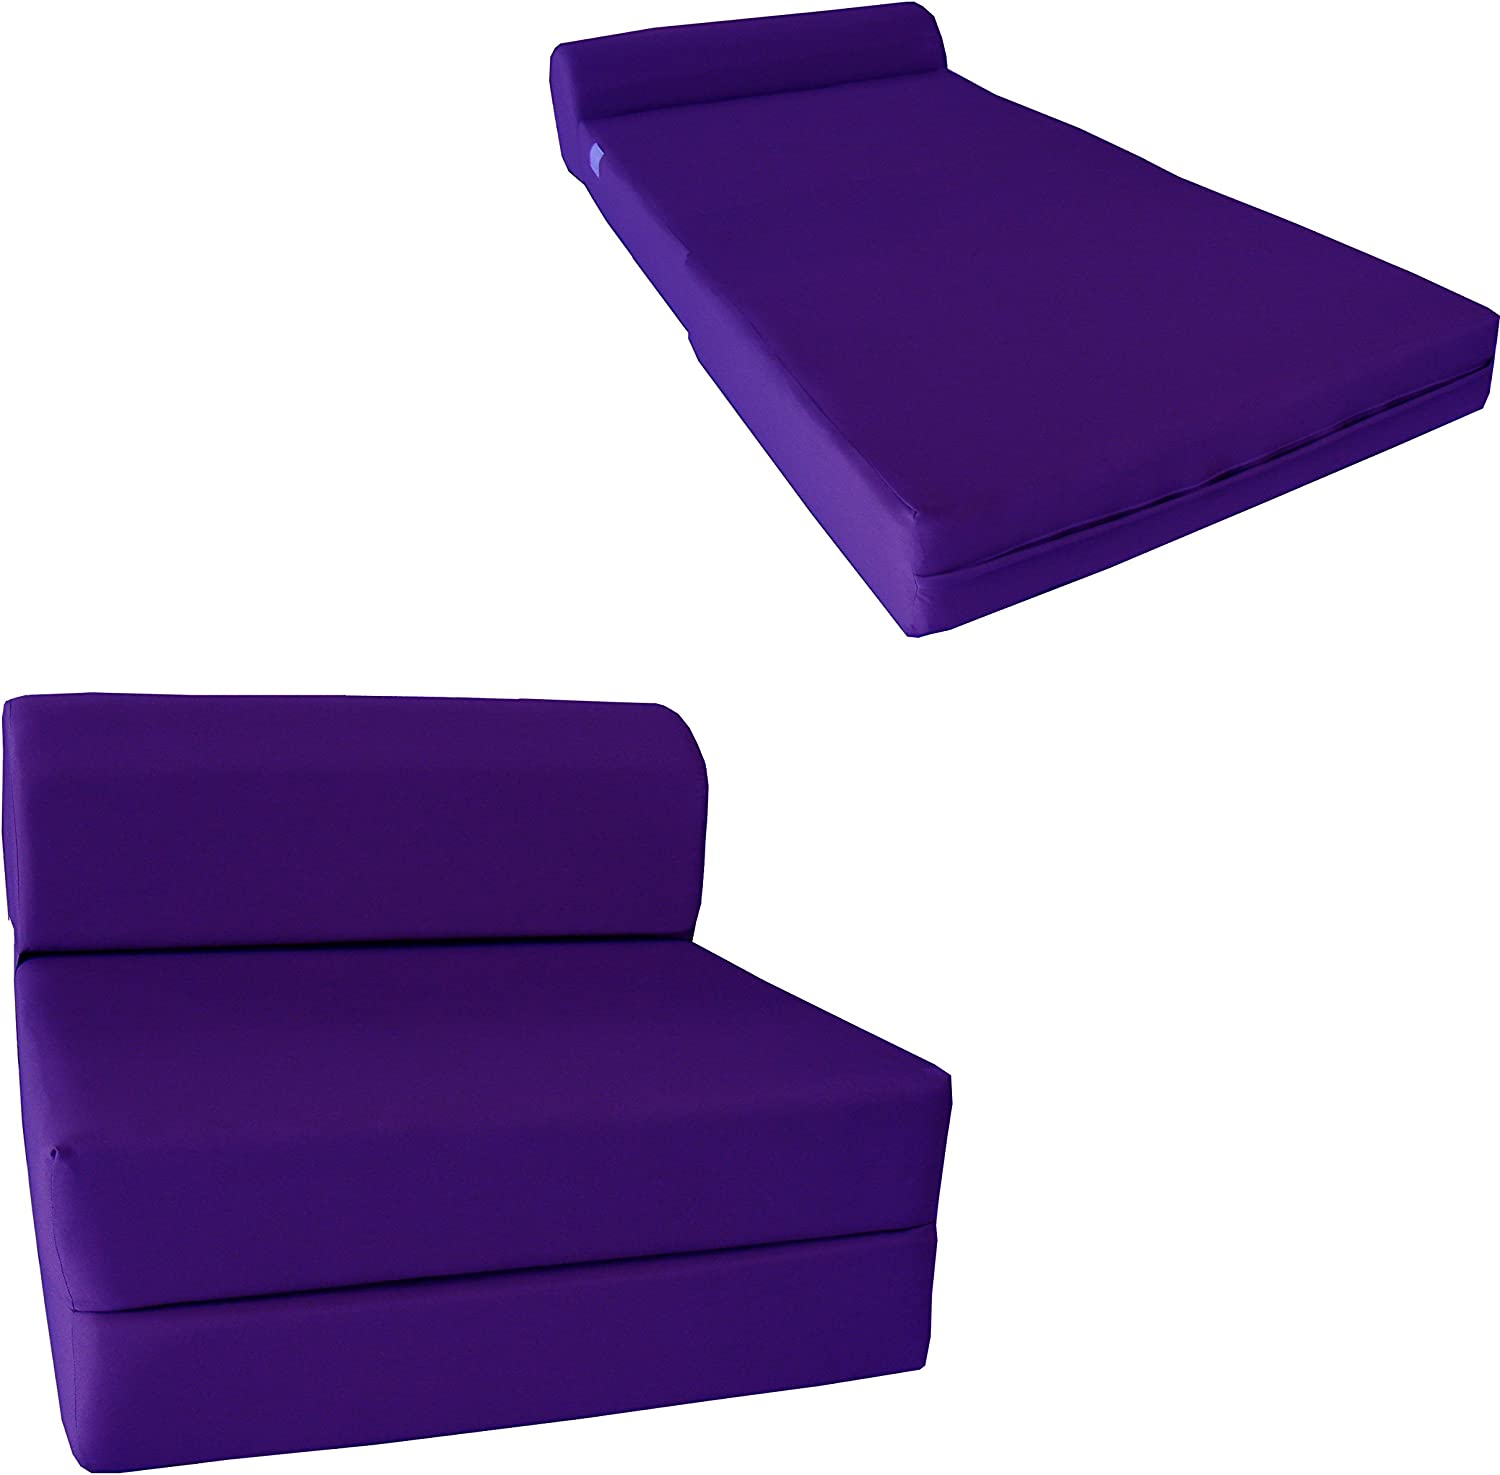 D&D Futon Furniture Purple Sleeper Chair Folding Foam Bed Sized 6